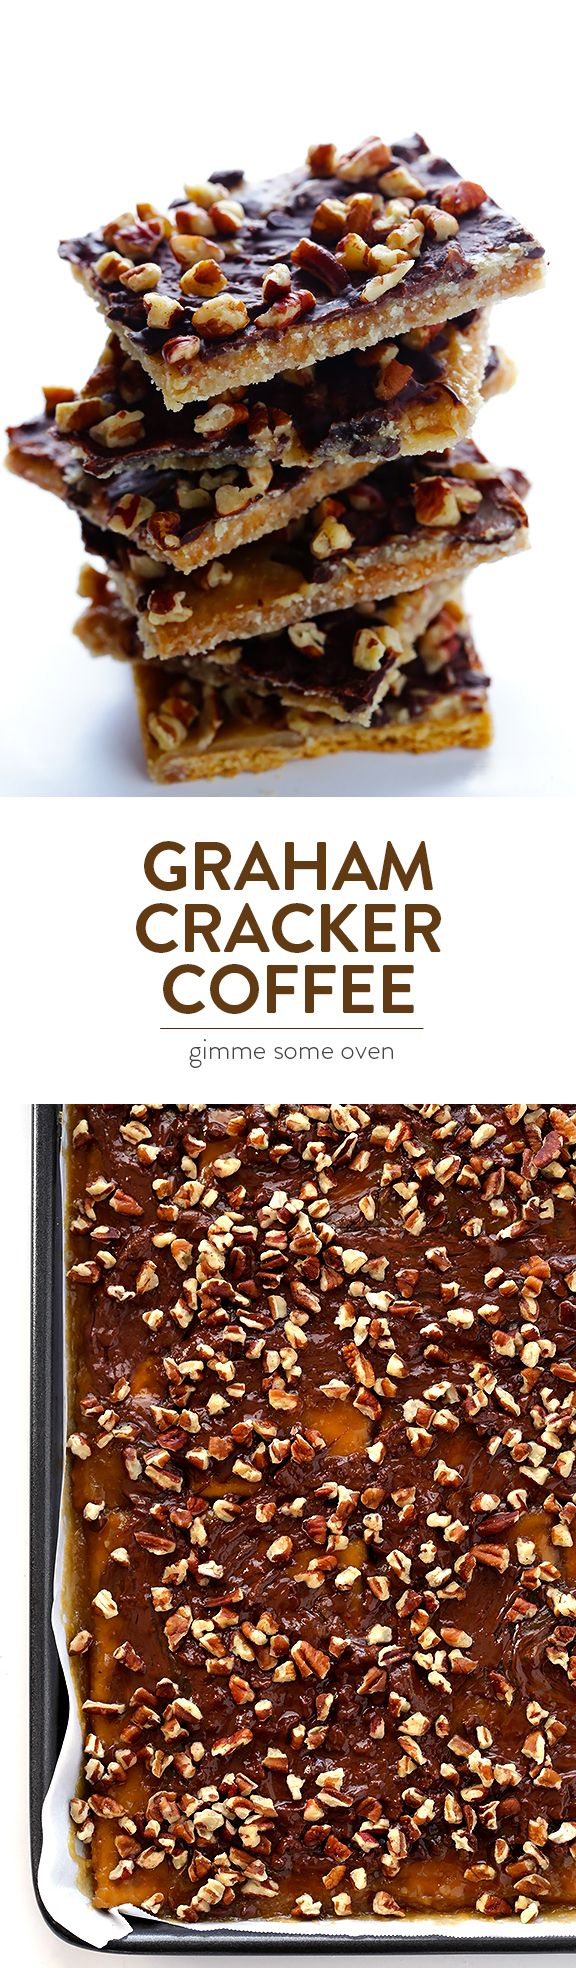 This delicious Graham Cracker Toffee recipe is super quick and easy to make, requires just 5 ingredients, and it's sooooo irresistible!! | gimmesomeoven.com